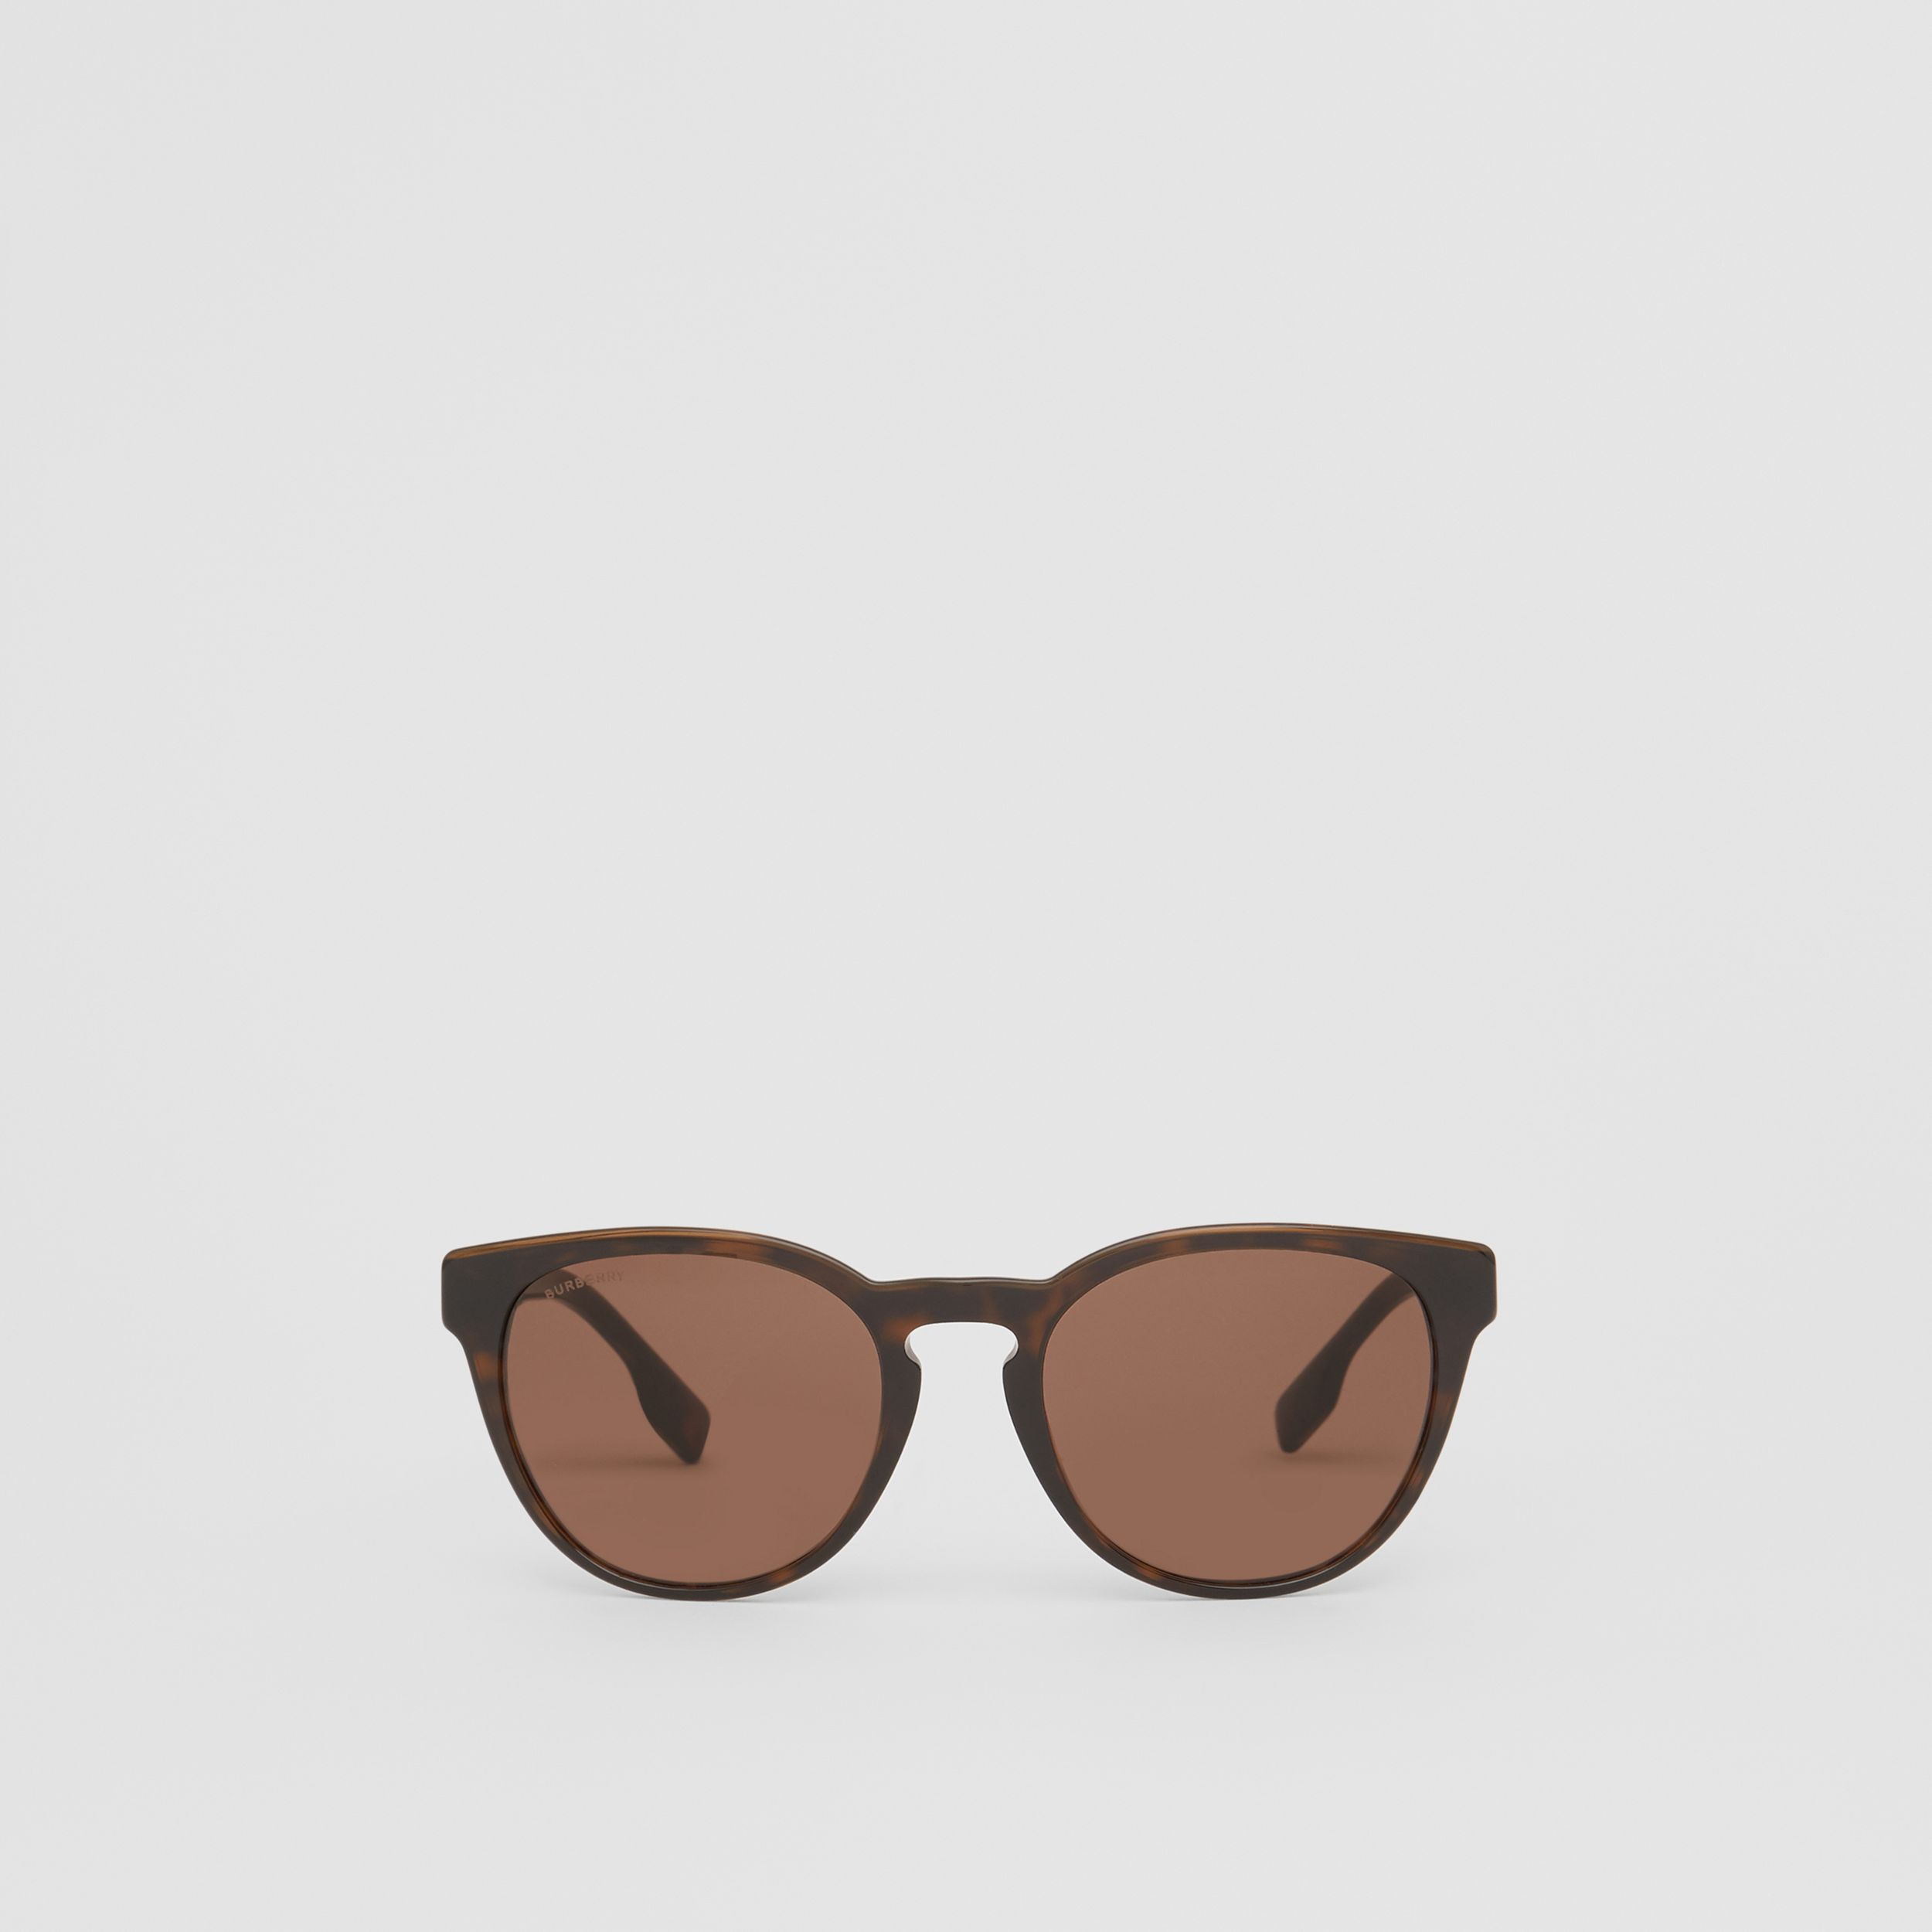 Round Frame Sunglasses in Tortoiseshell - Men | Burberry - 1